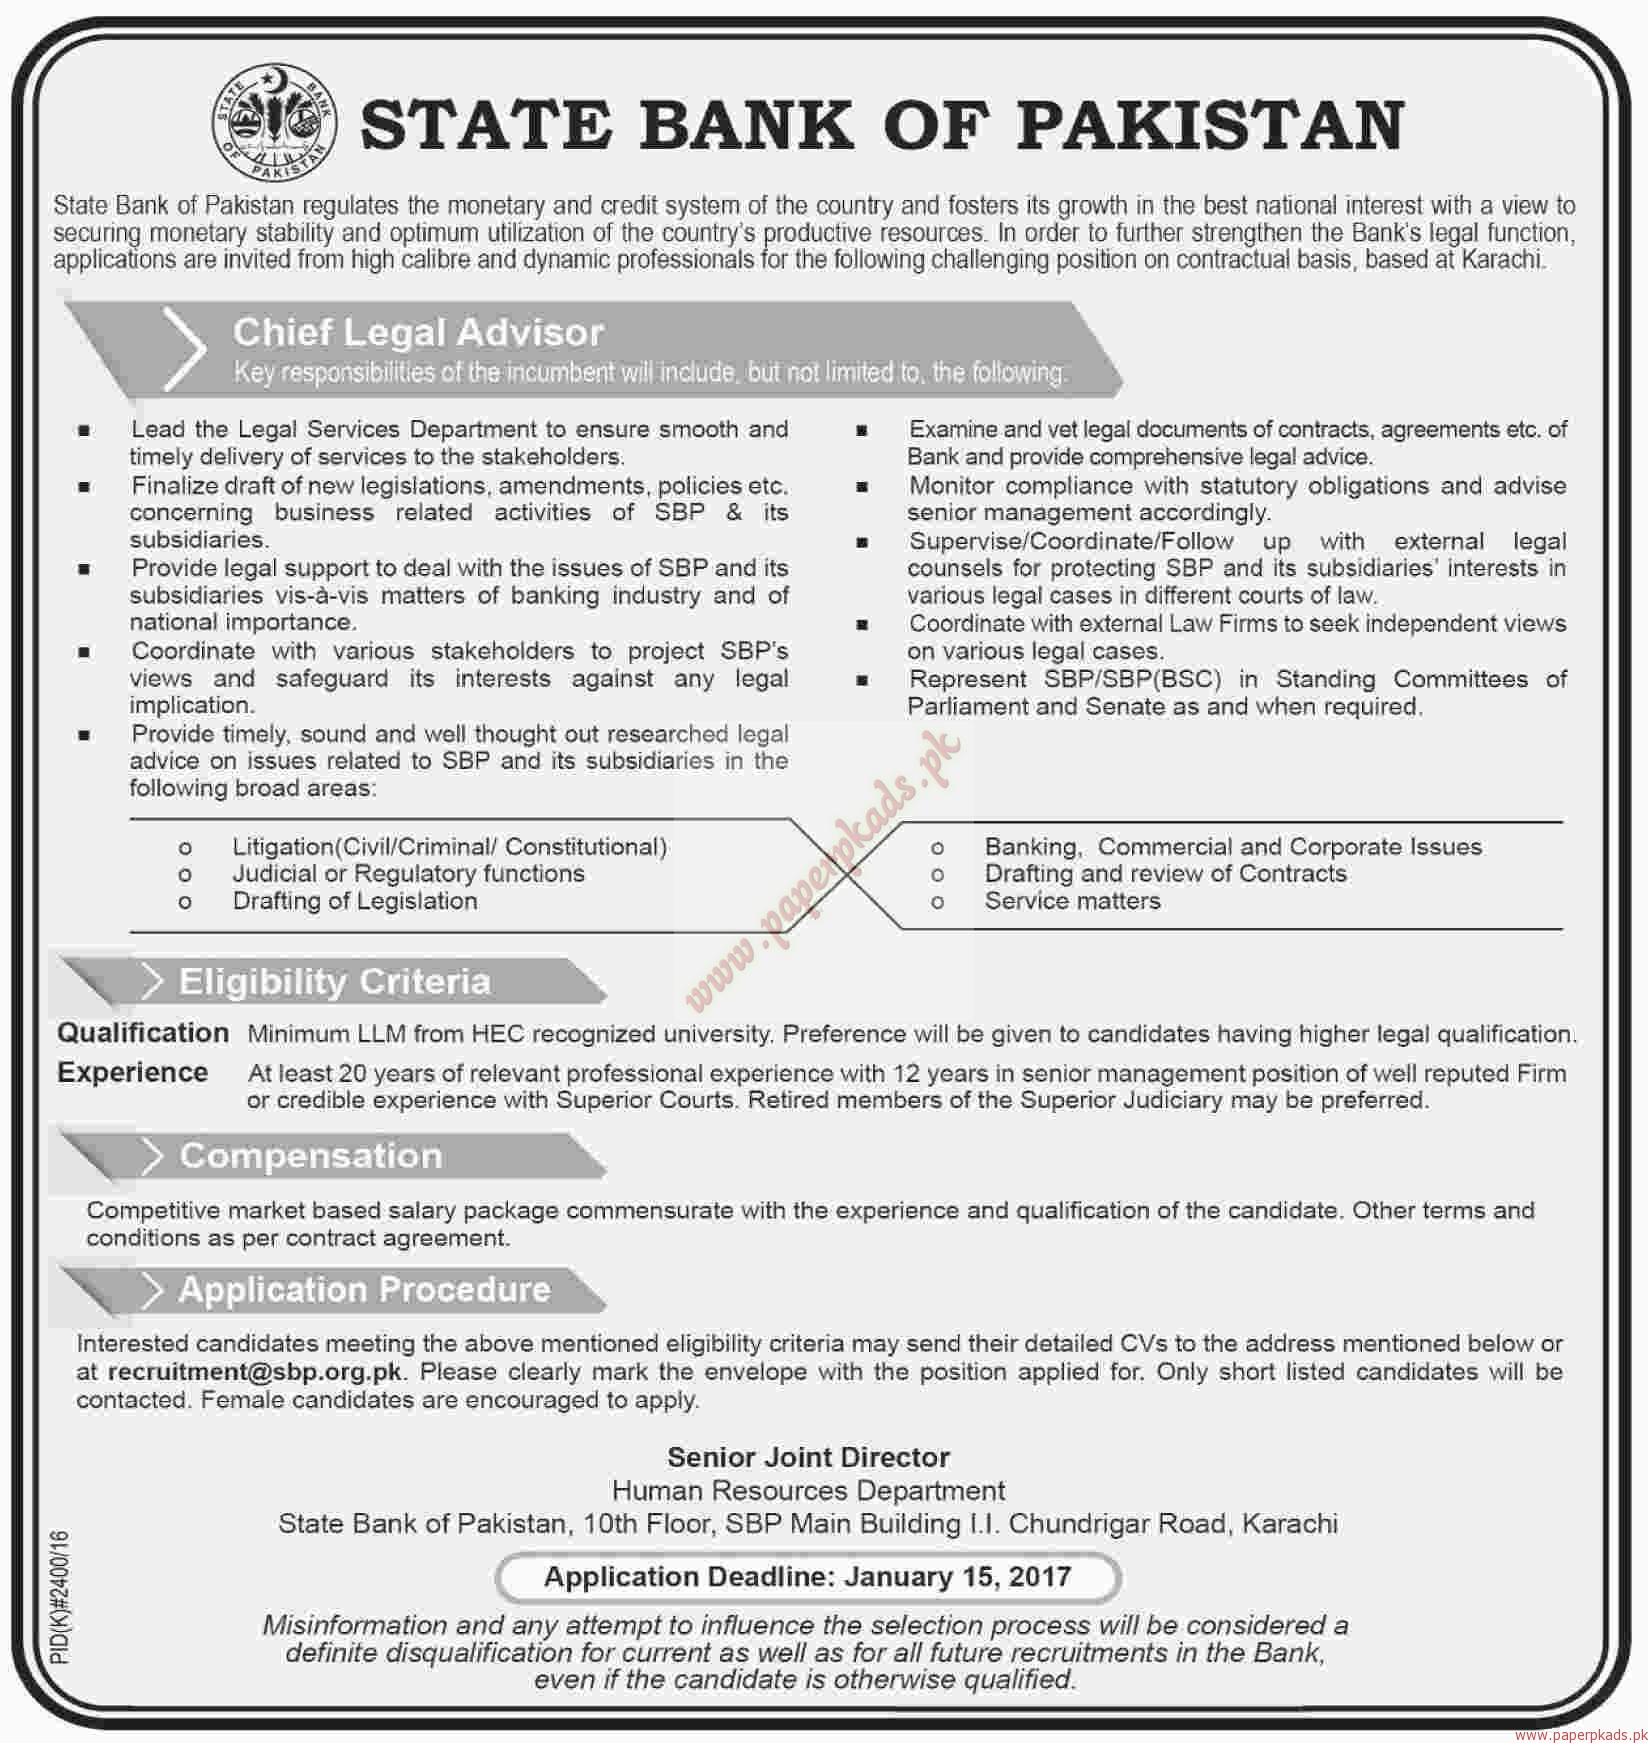 State Bank of Pakistan Jobs - Dawn Jobs ads 01 January 2017